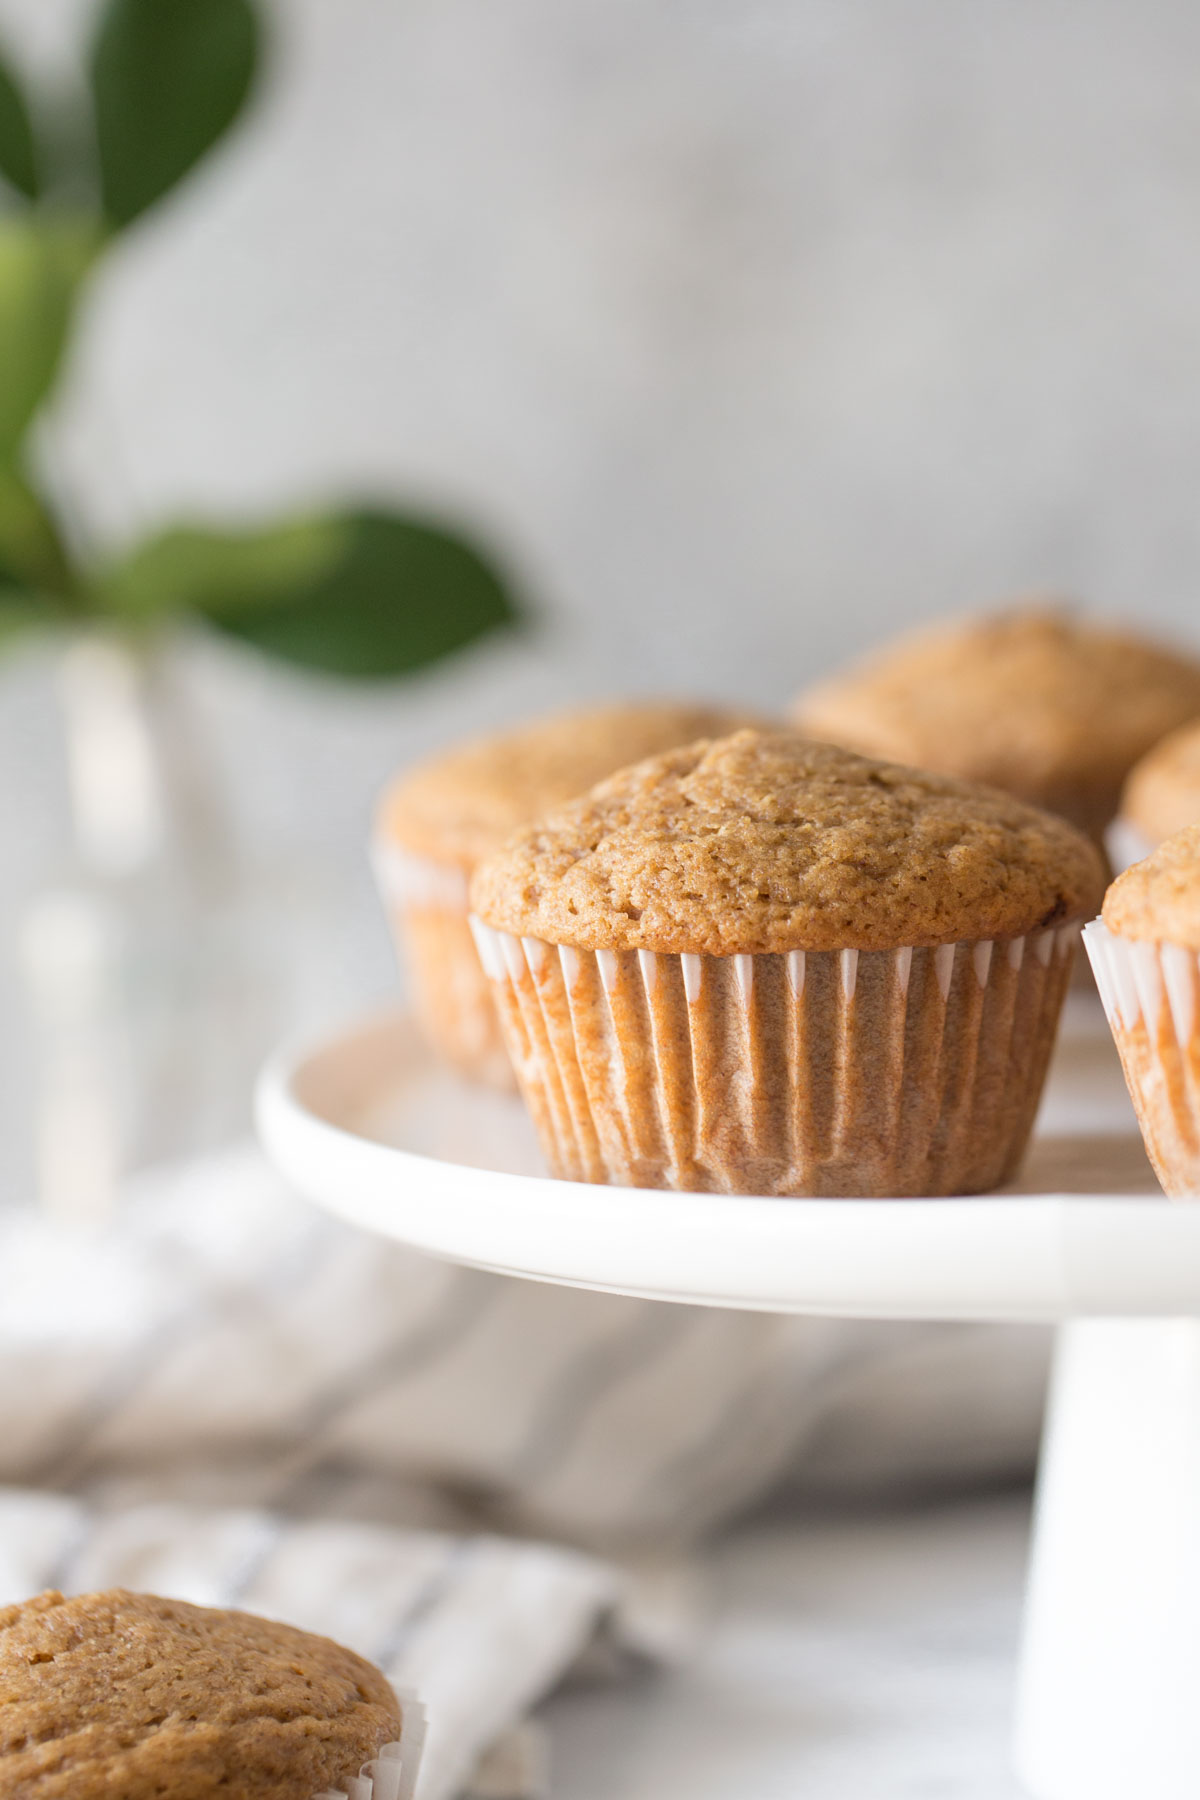 Cinnamon Applesauce Muffins on a white cake stand with a white background.